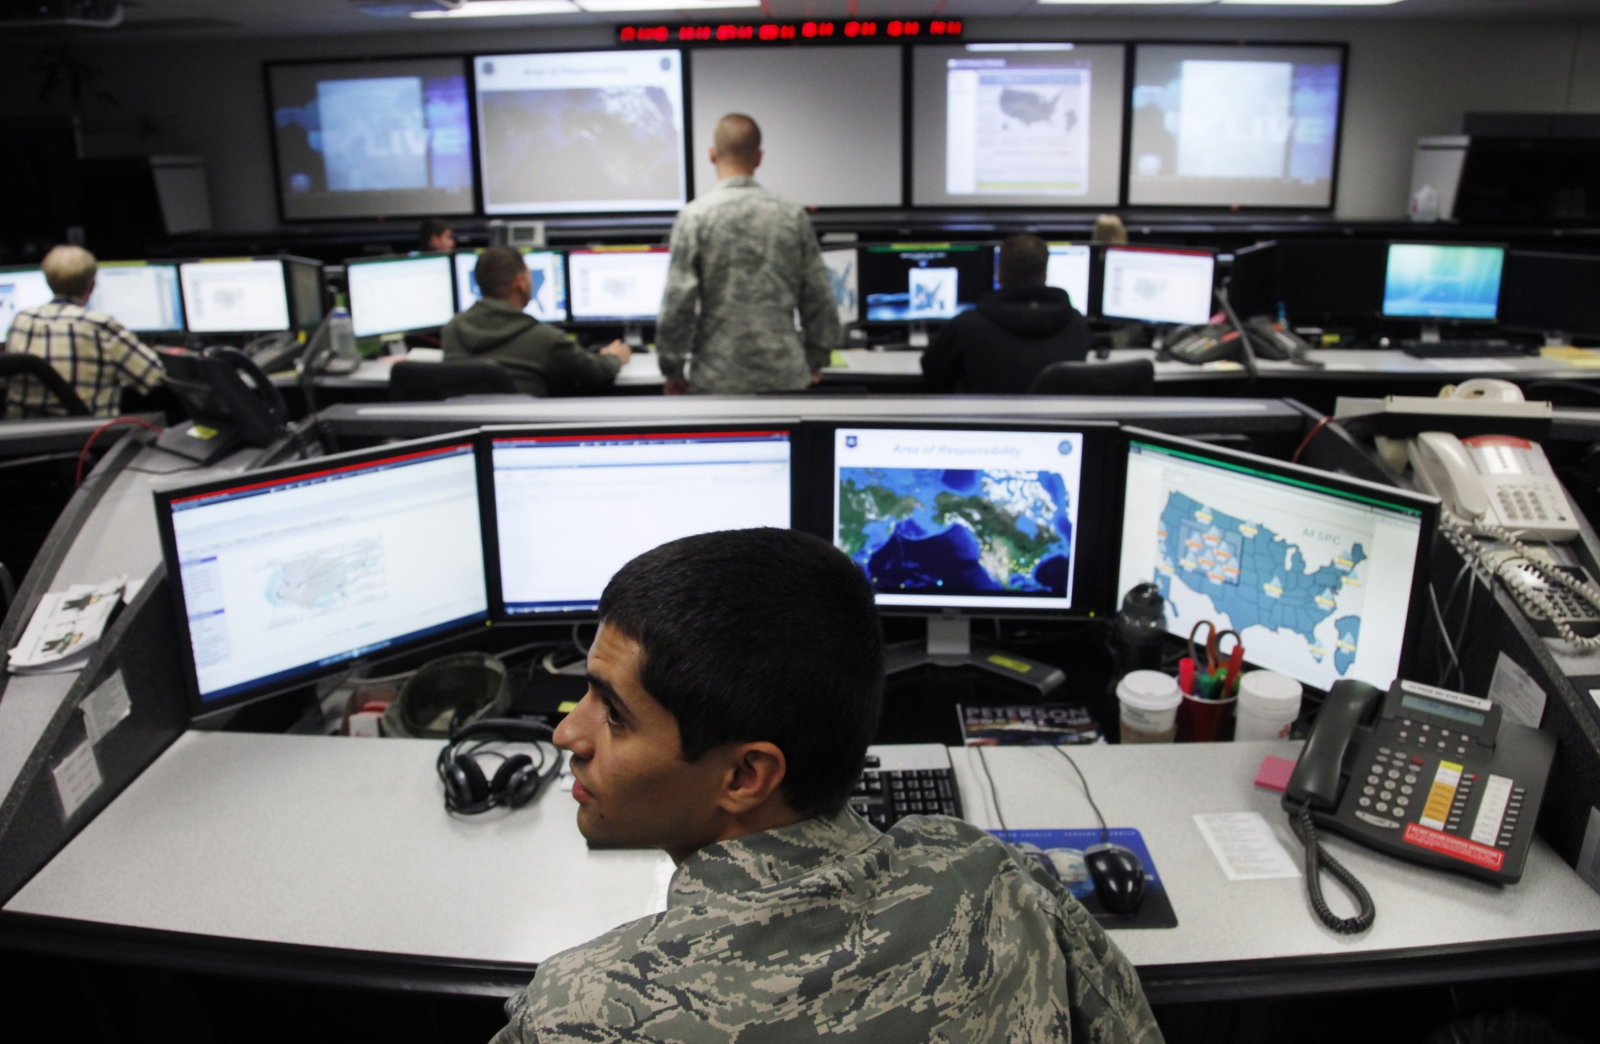 Pentagon not happy with slow-paced offensive cyberwar against Islamic State